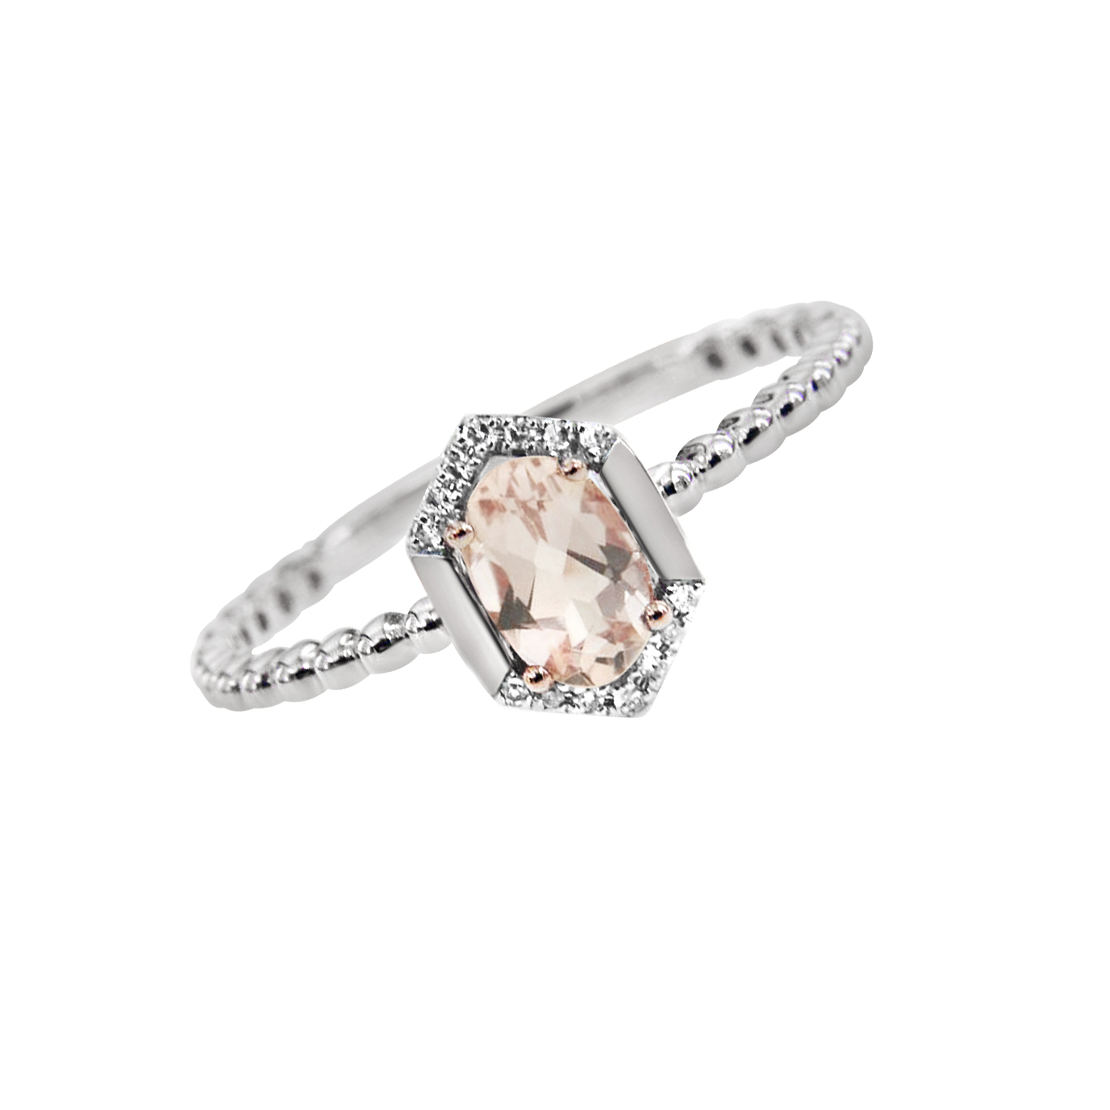 White and Rose Gold Morganite and Diamond Ring